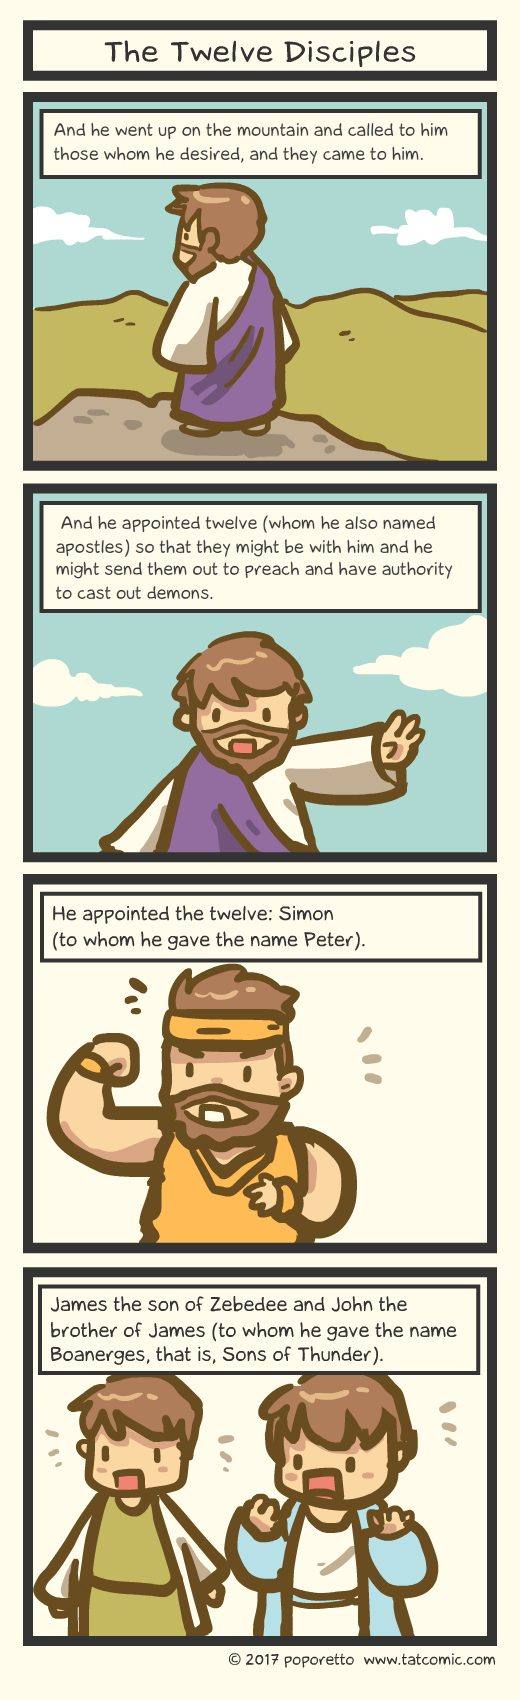 Gospel Christian comic strip jesus called the twelve disciples simon peter, andrew, philip, nathanael, bartholomew, judas iscariot, simon peter, 12 disciples gospel comic